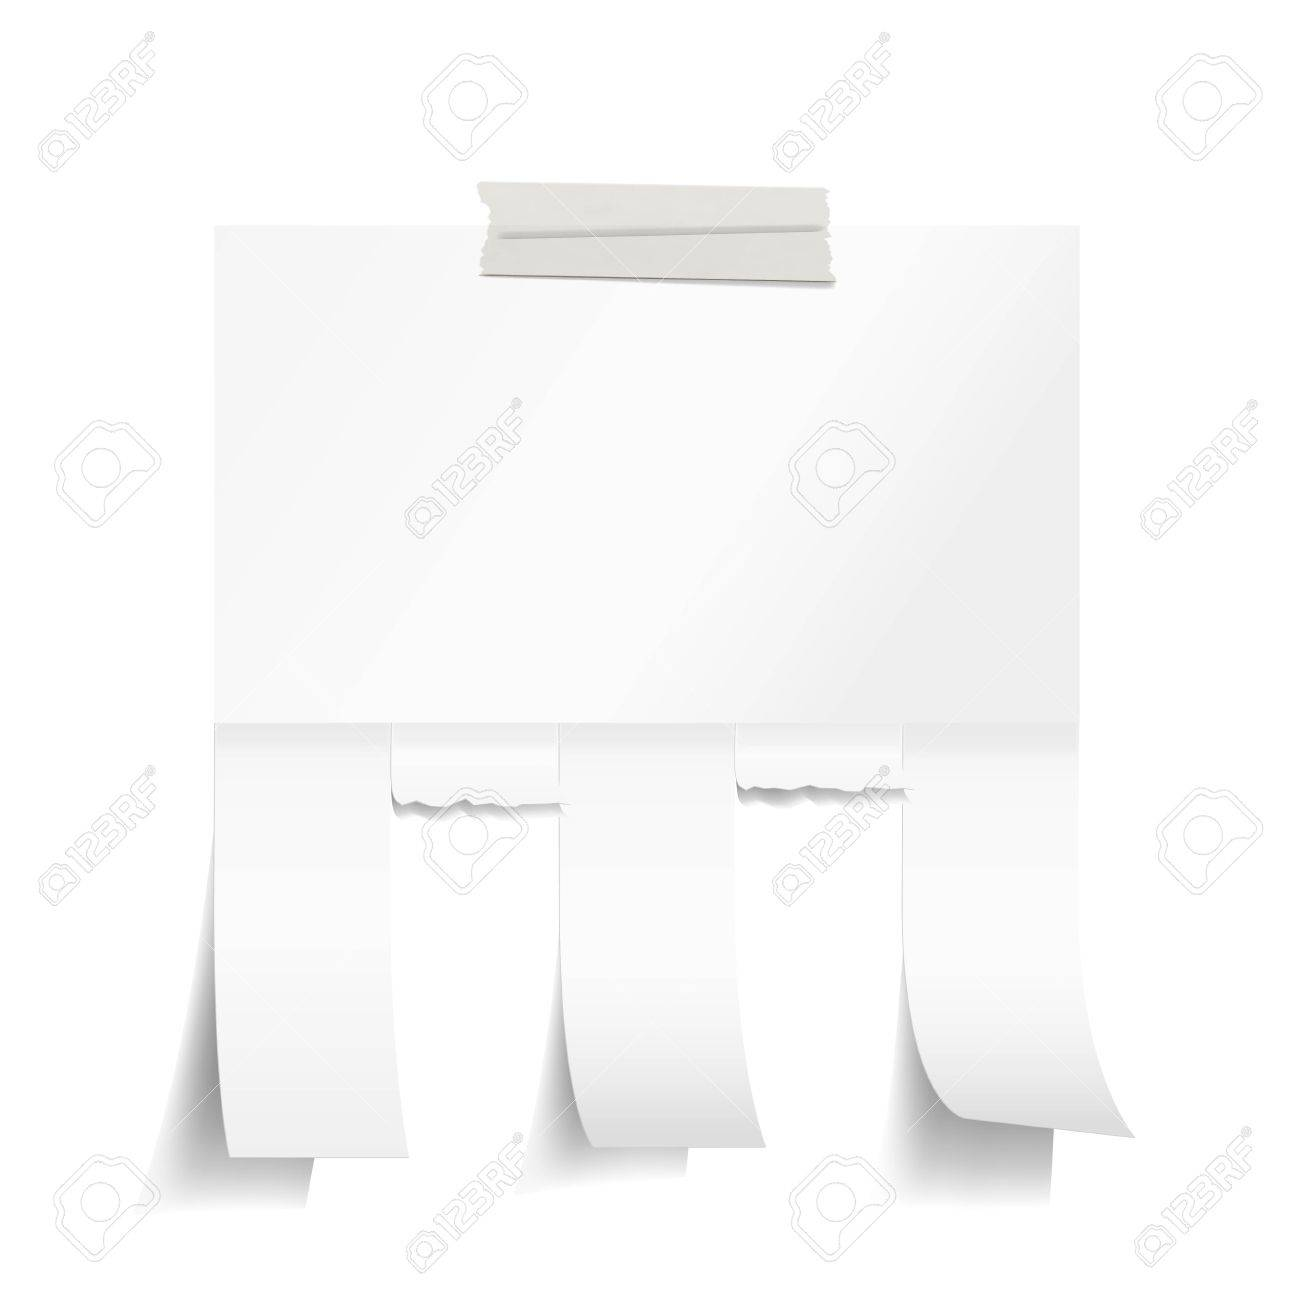 Blank White Paper With Tear Off Tabs Royalty Free Cliparts, Vectors ...